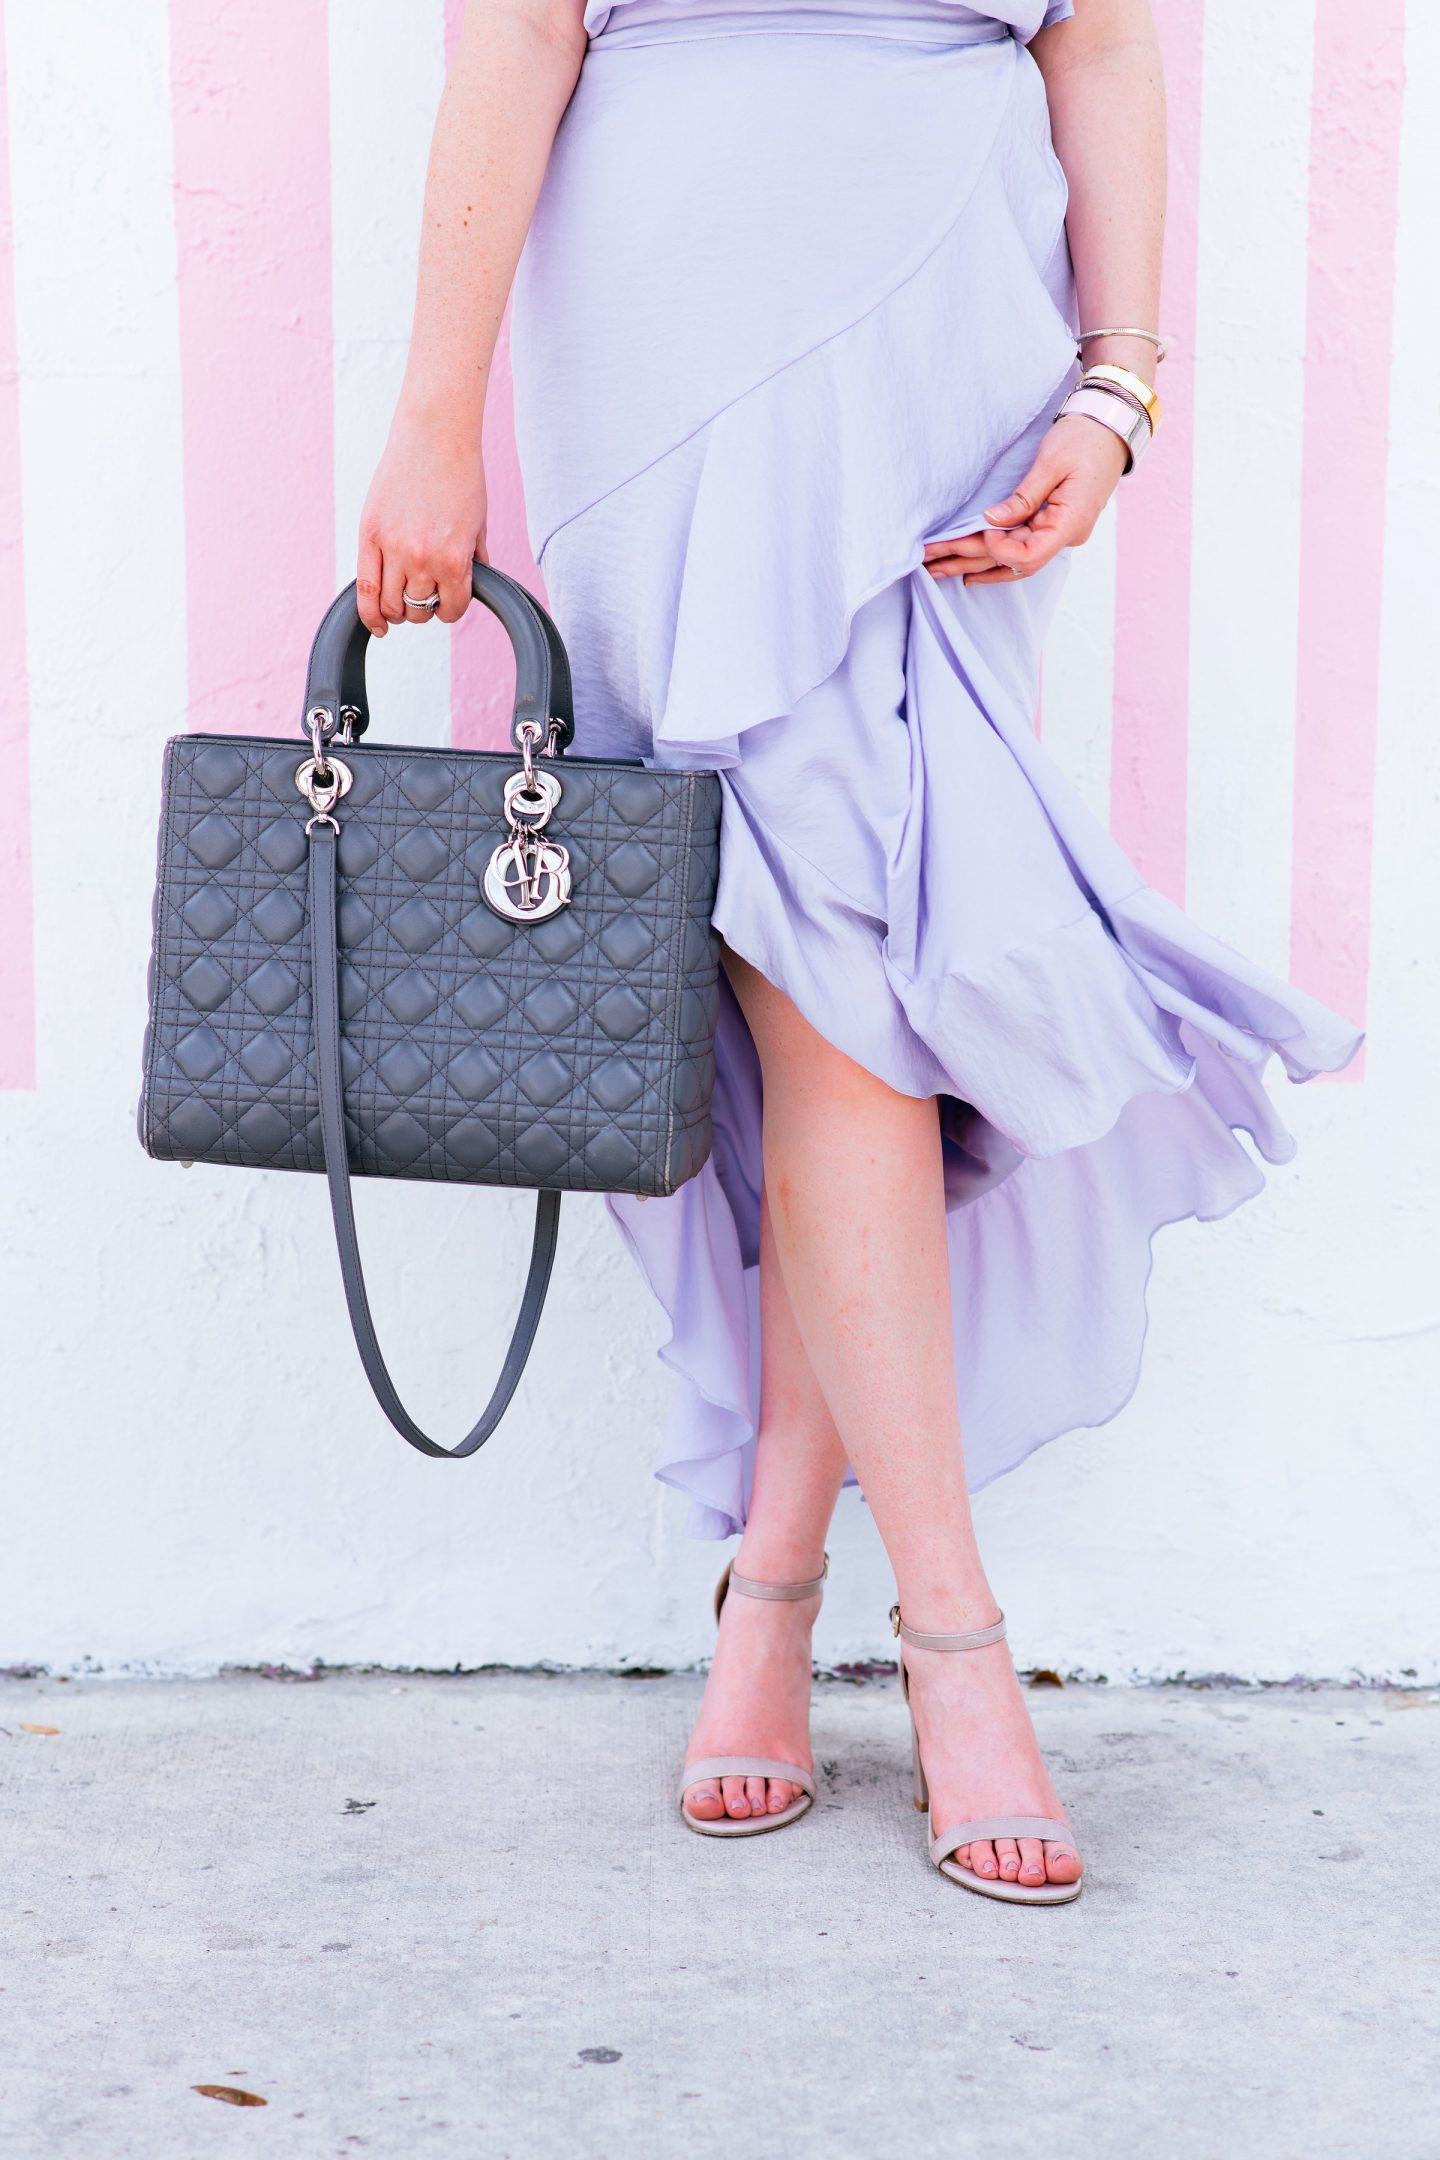 THE REAL REASON WHY I ONLY BUY LUXURY HANDBAGS,reason why I only buy luxury handbags, lady Dior large, lady Dior bag, Stuart weitzman barely nude, spring fashion dress, christian Dior, summer fashion 2018